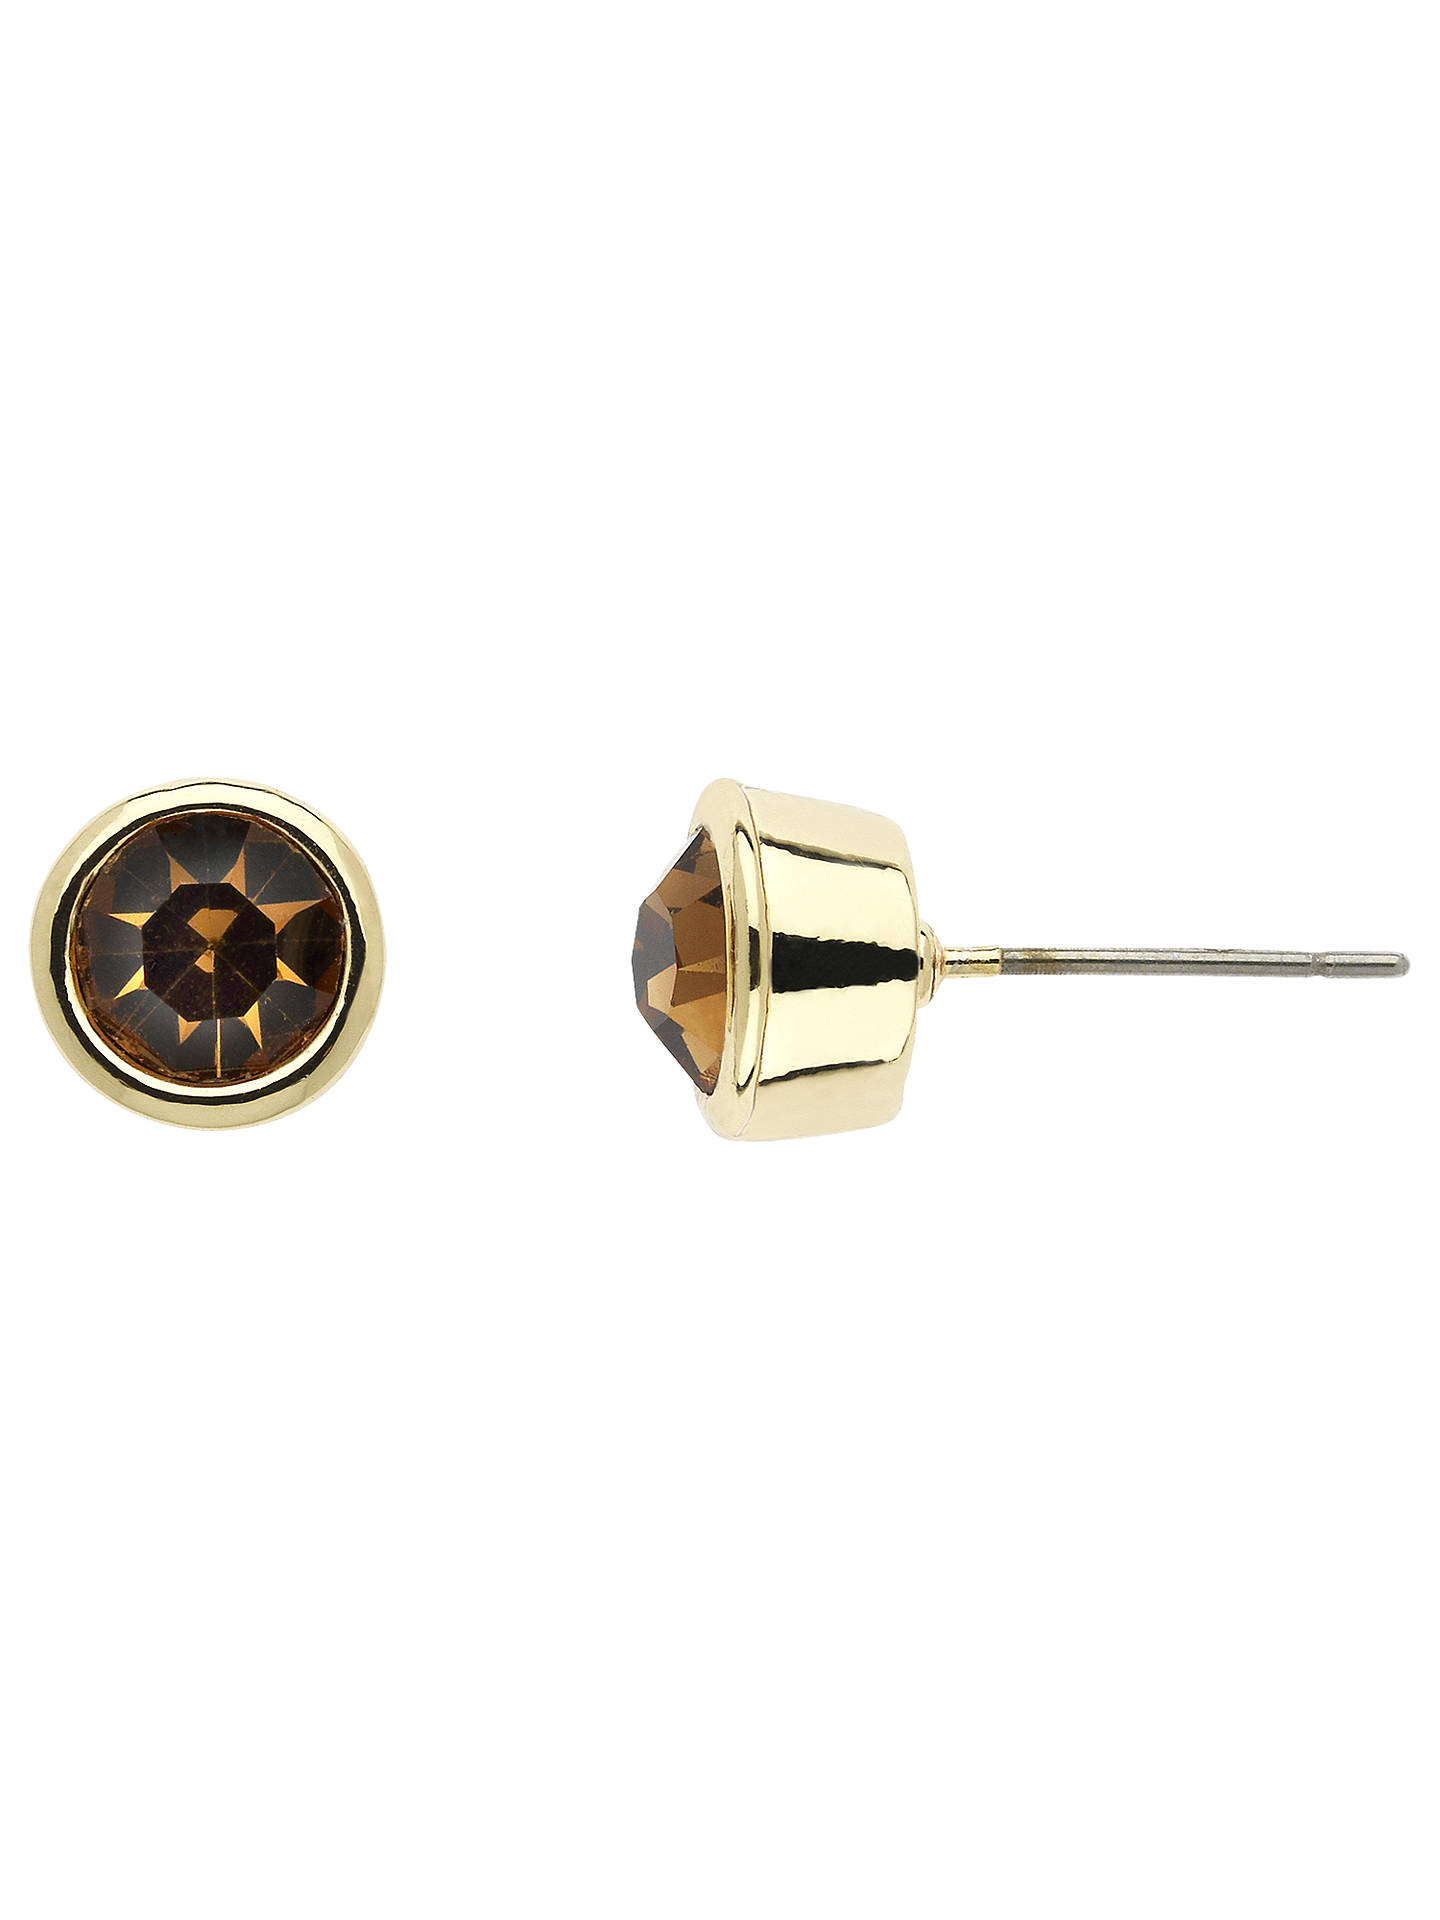 BuyMonet Round Crystal Stud Earrings, Gold Topaz Online at johnlewis.com